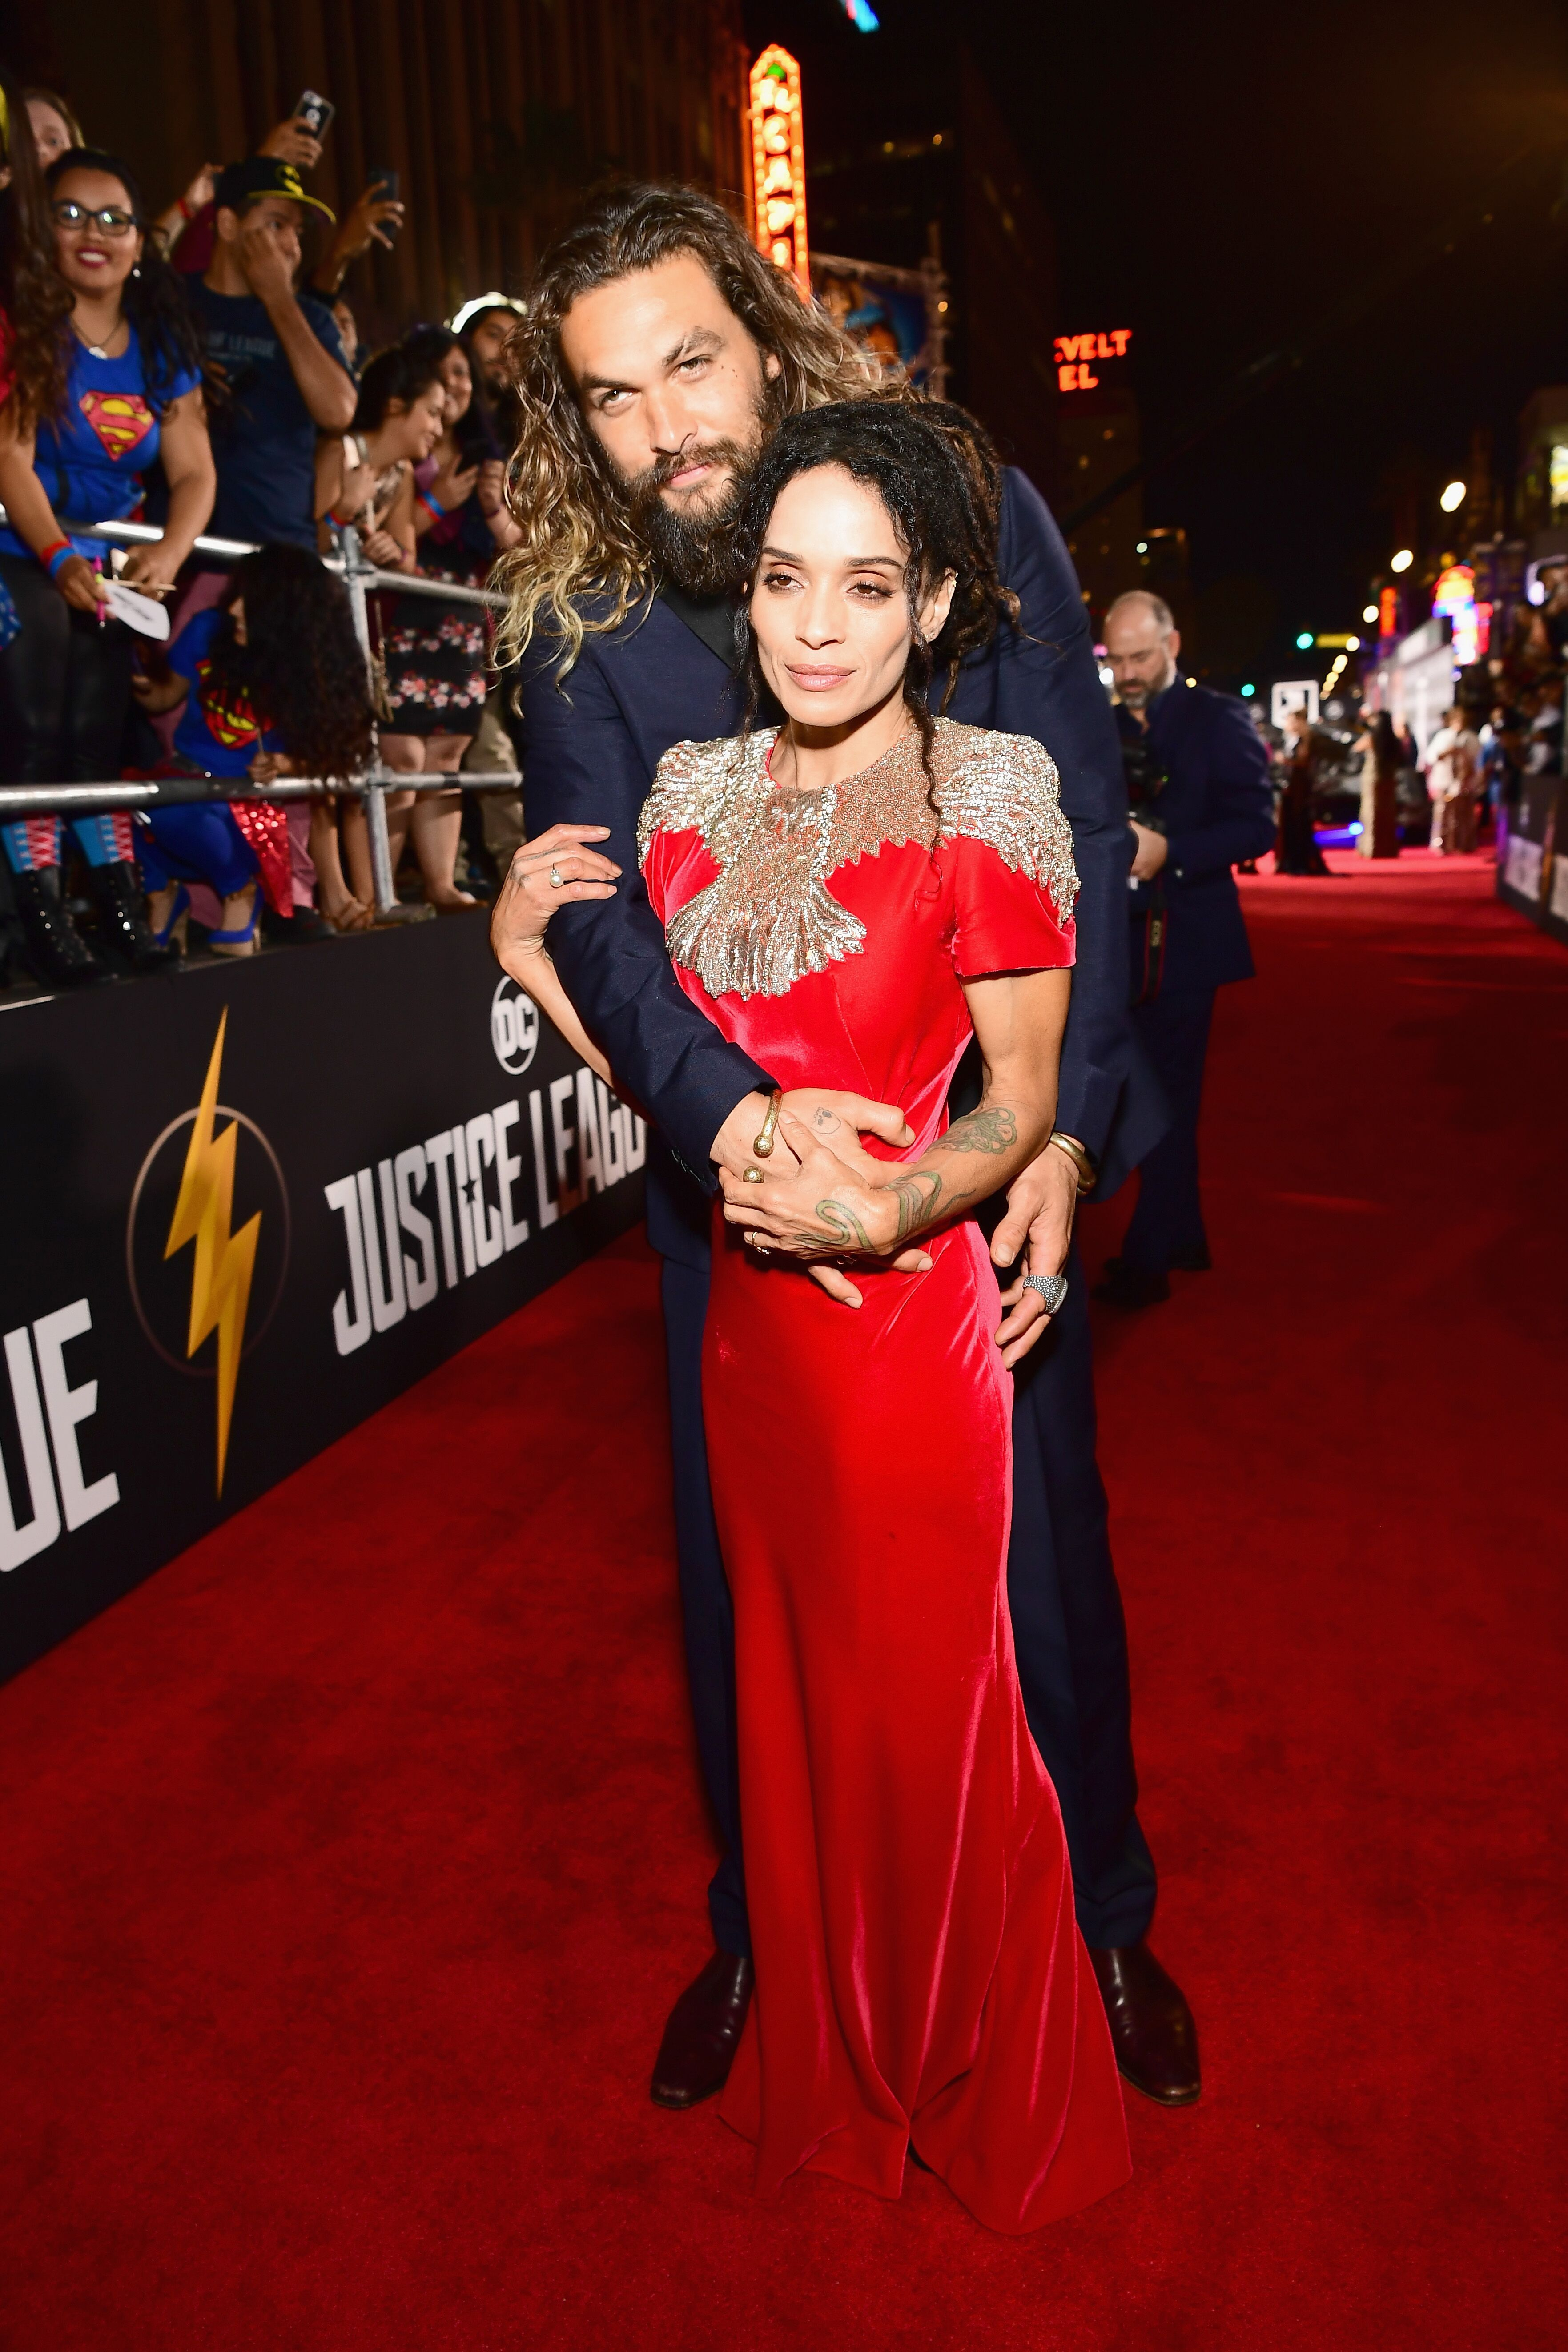 """Jason Momoa and Lisa Bonet at the premiere of """"Justice League""""/ Source. Getty Images"""